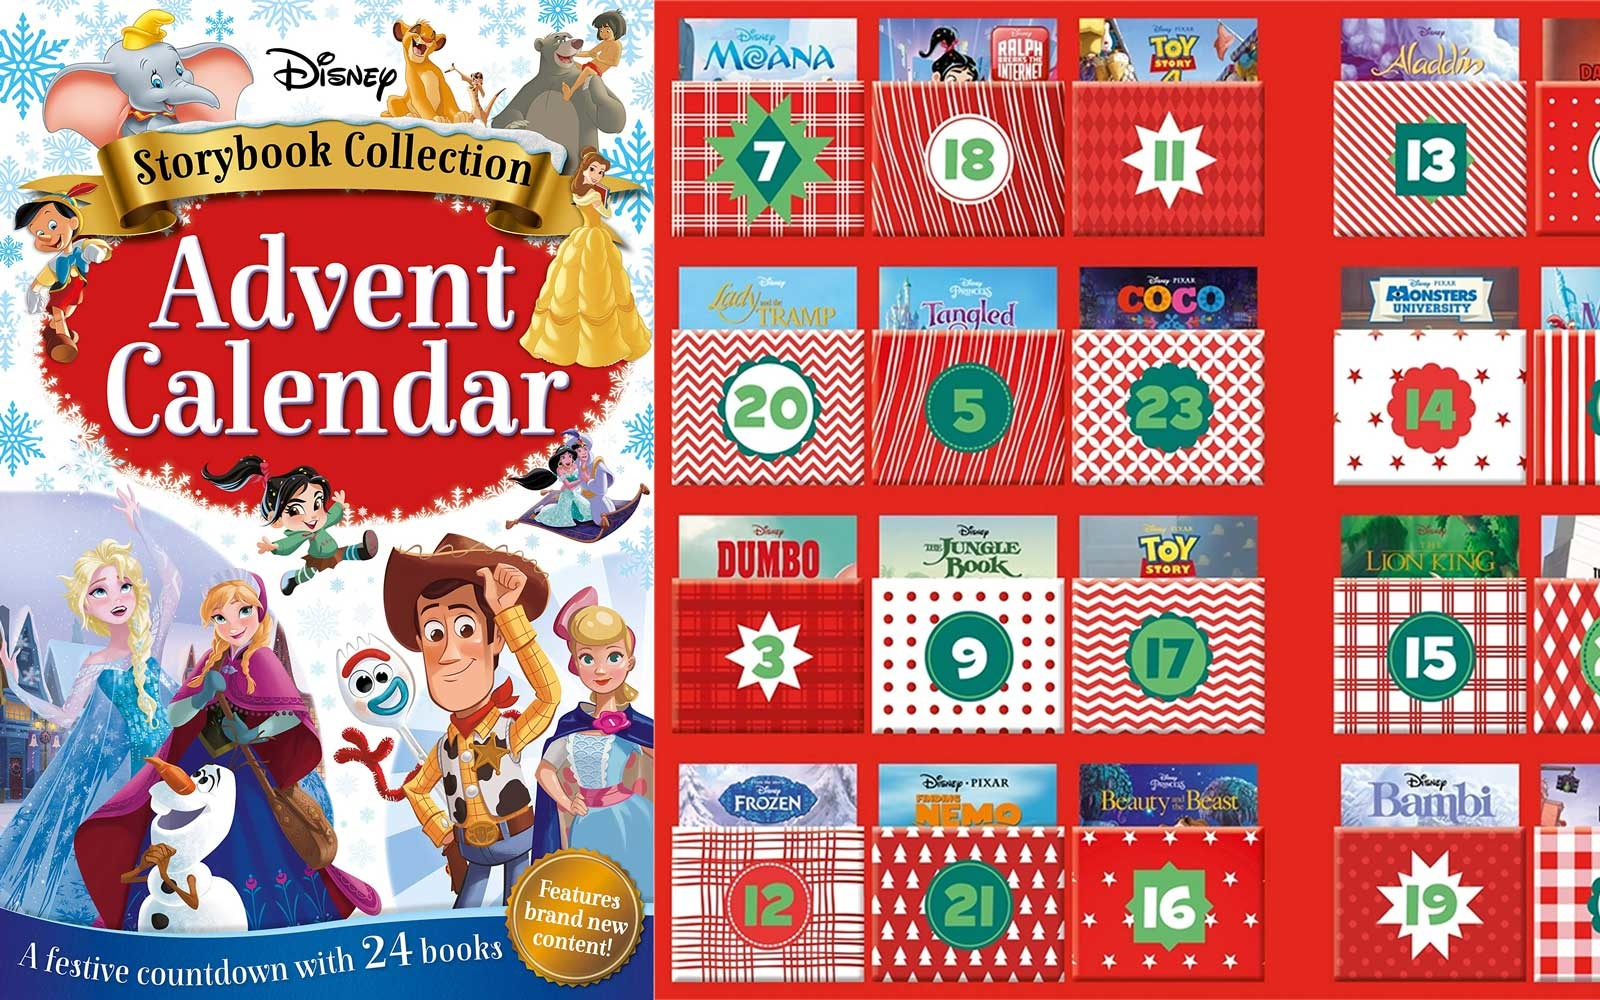 Disney's Storybook advent calendar